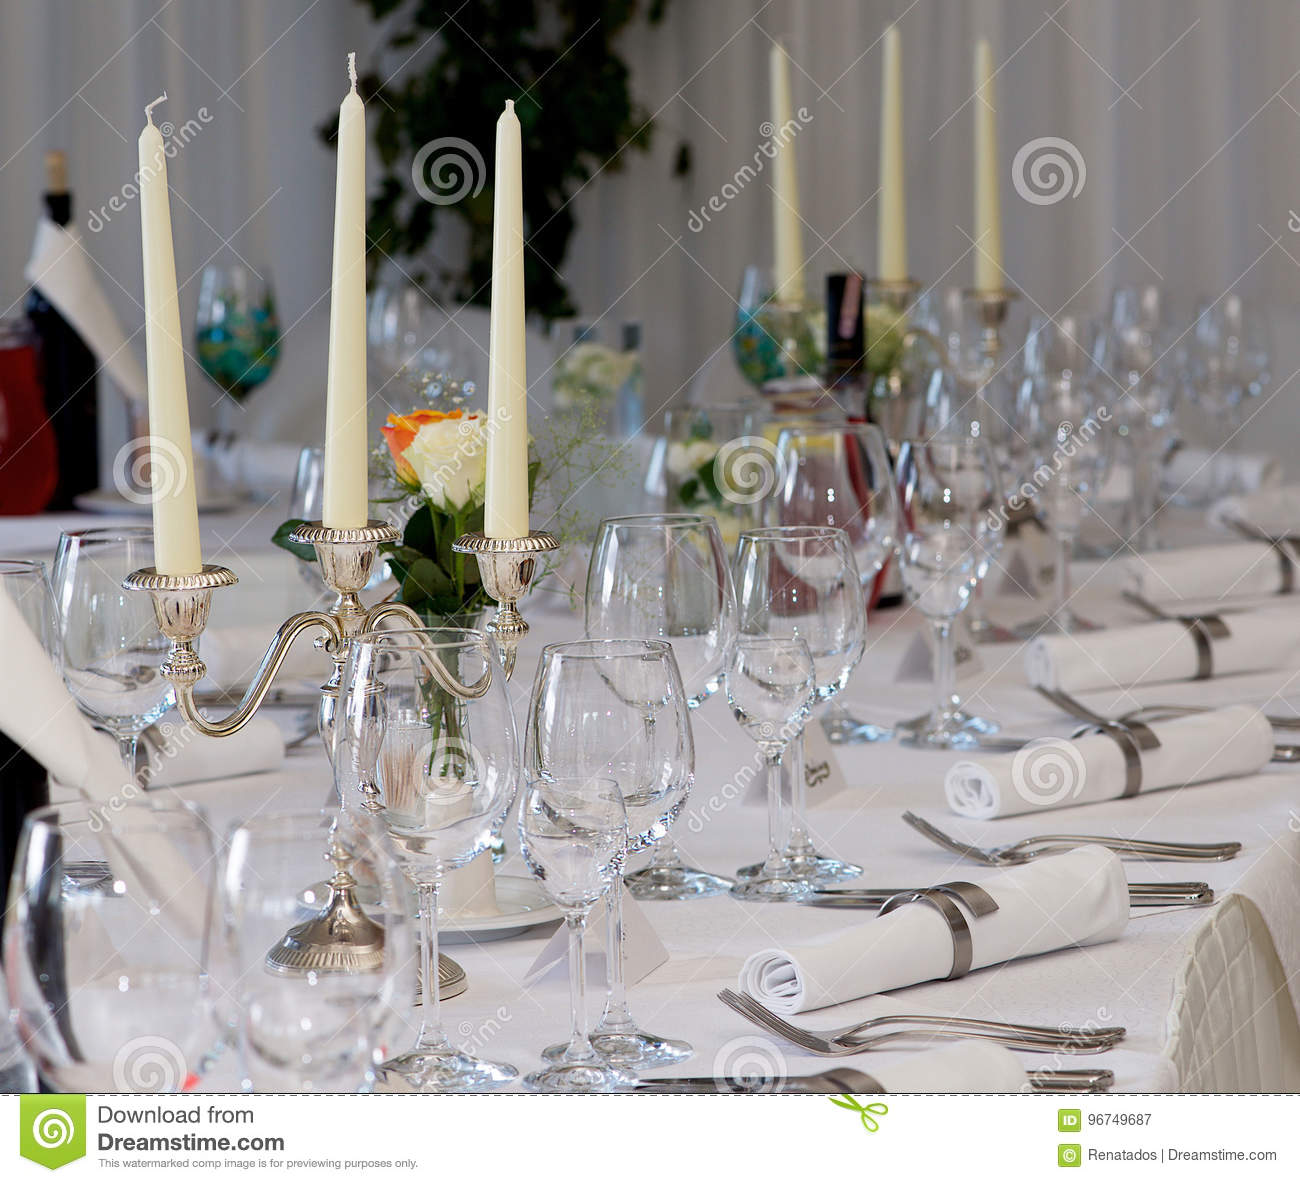 Table Decoration With Glasses Plates On Wedding Day Wedding Table